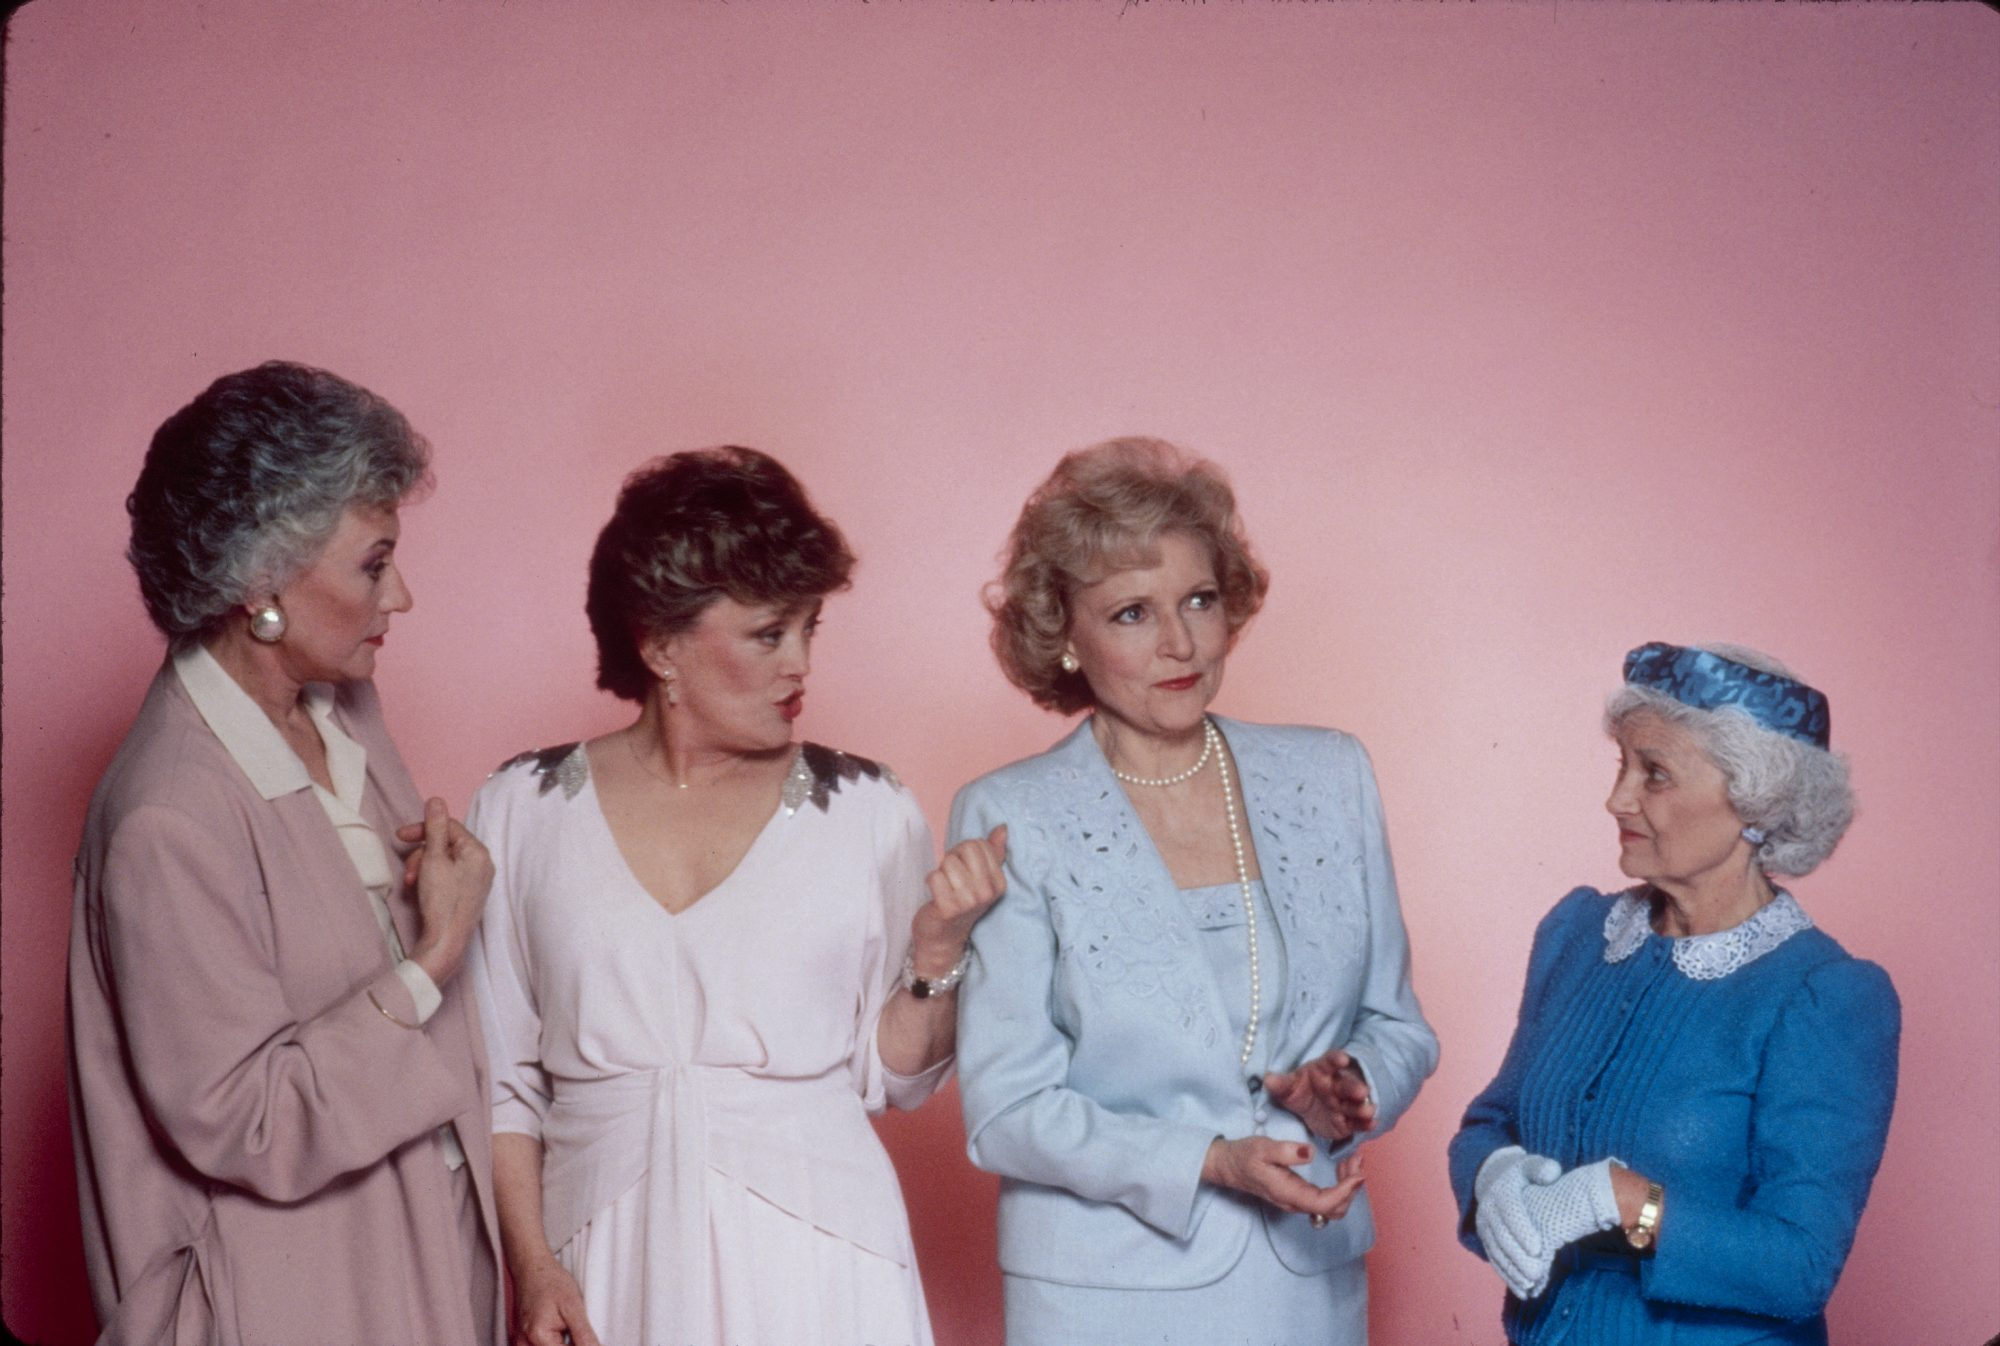 Golden Girls on Pink Wall